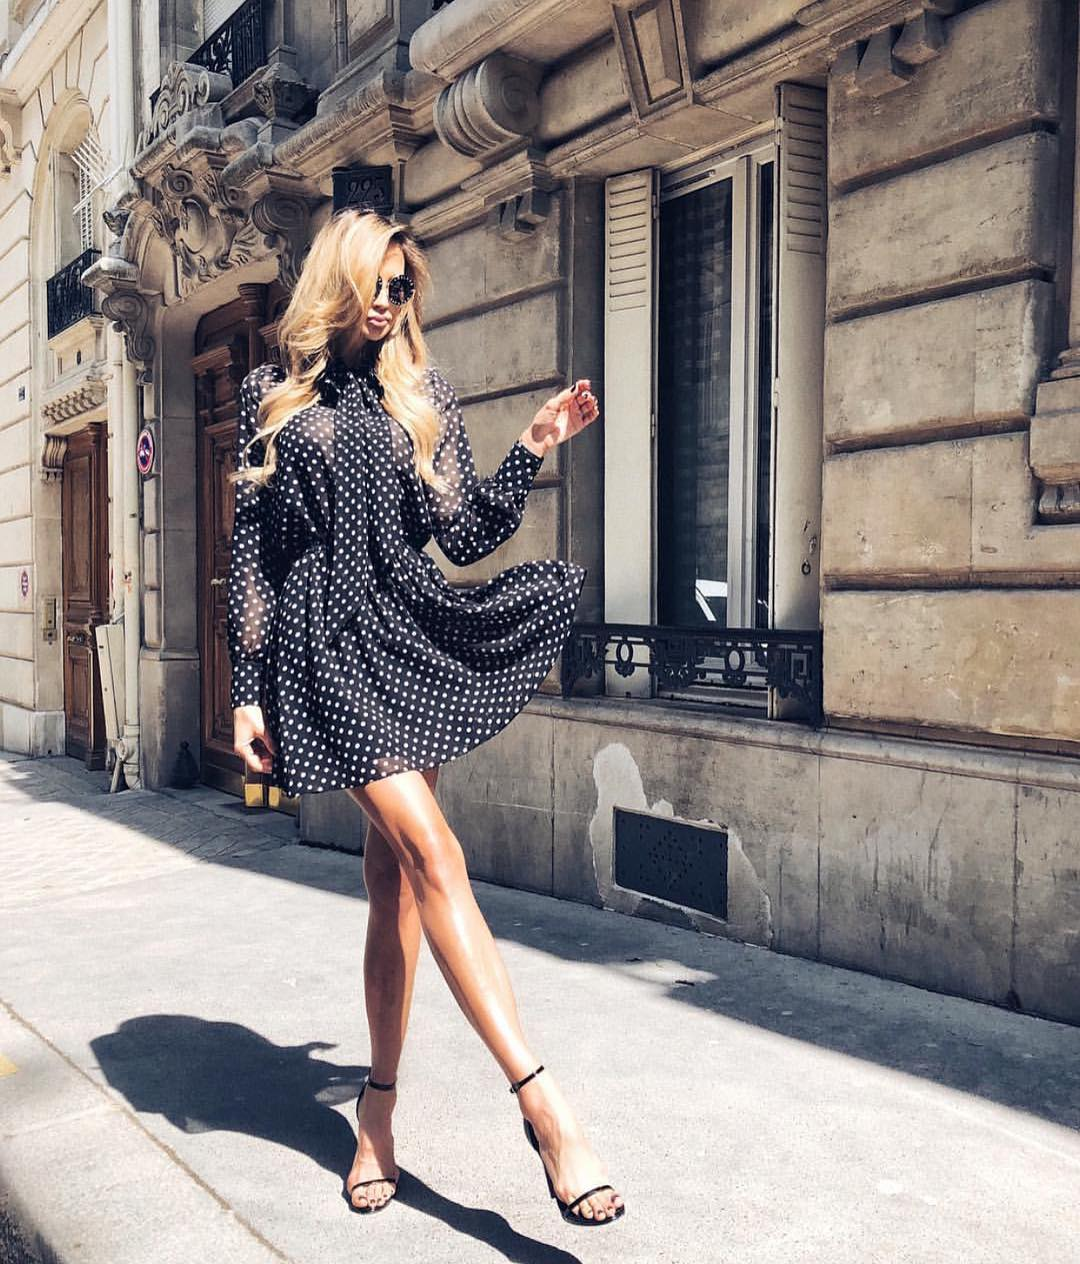 Black Semi-Sheer Blouse Dress In White Dots For Parisian Chic Summer 2020